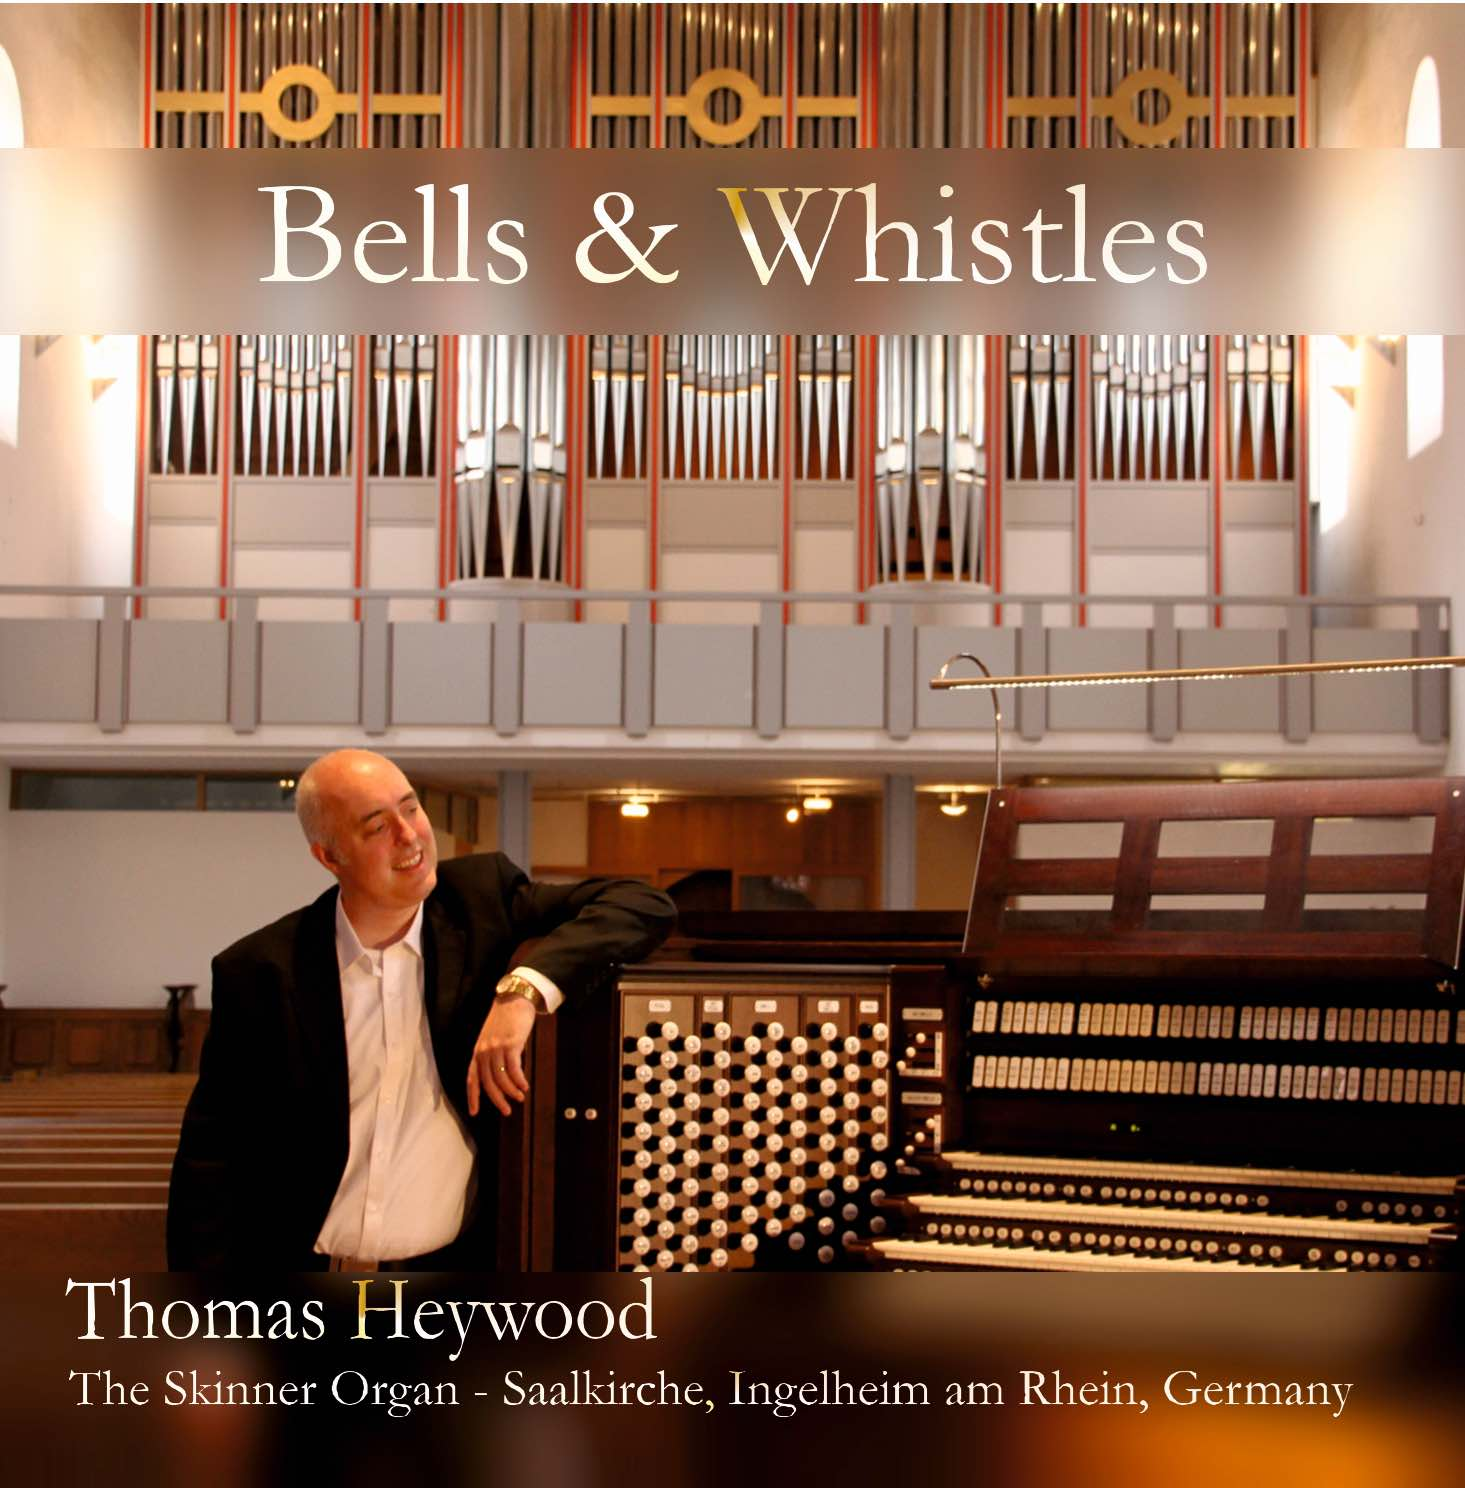 Bells & Whistles (CD) - Concert Organ International